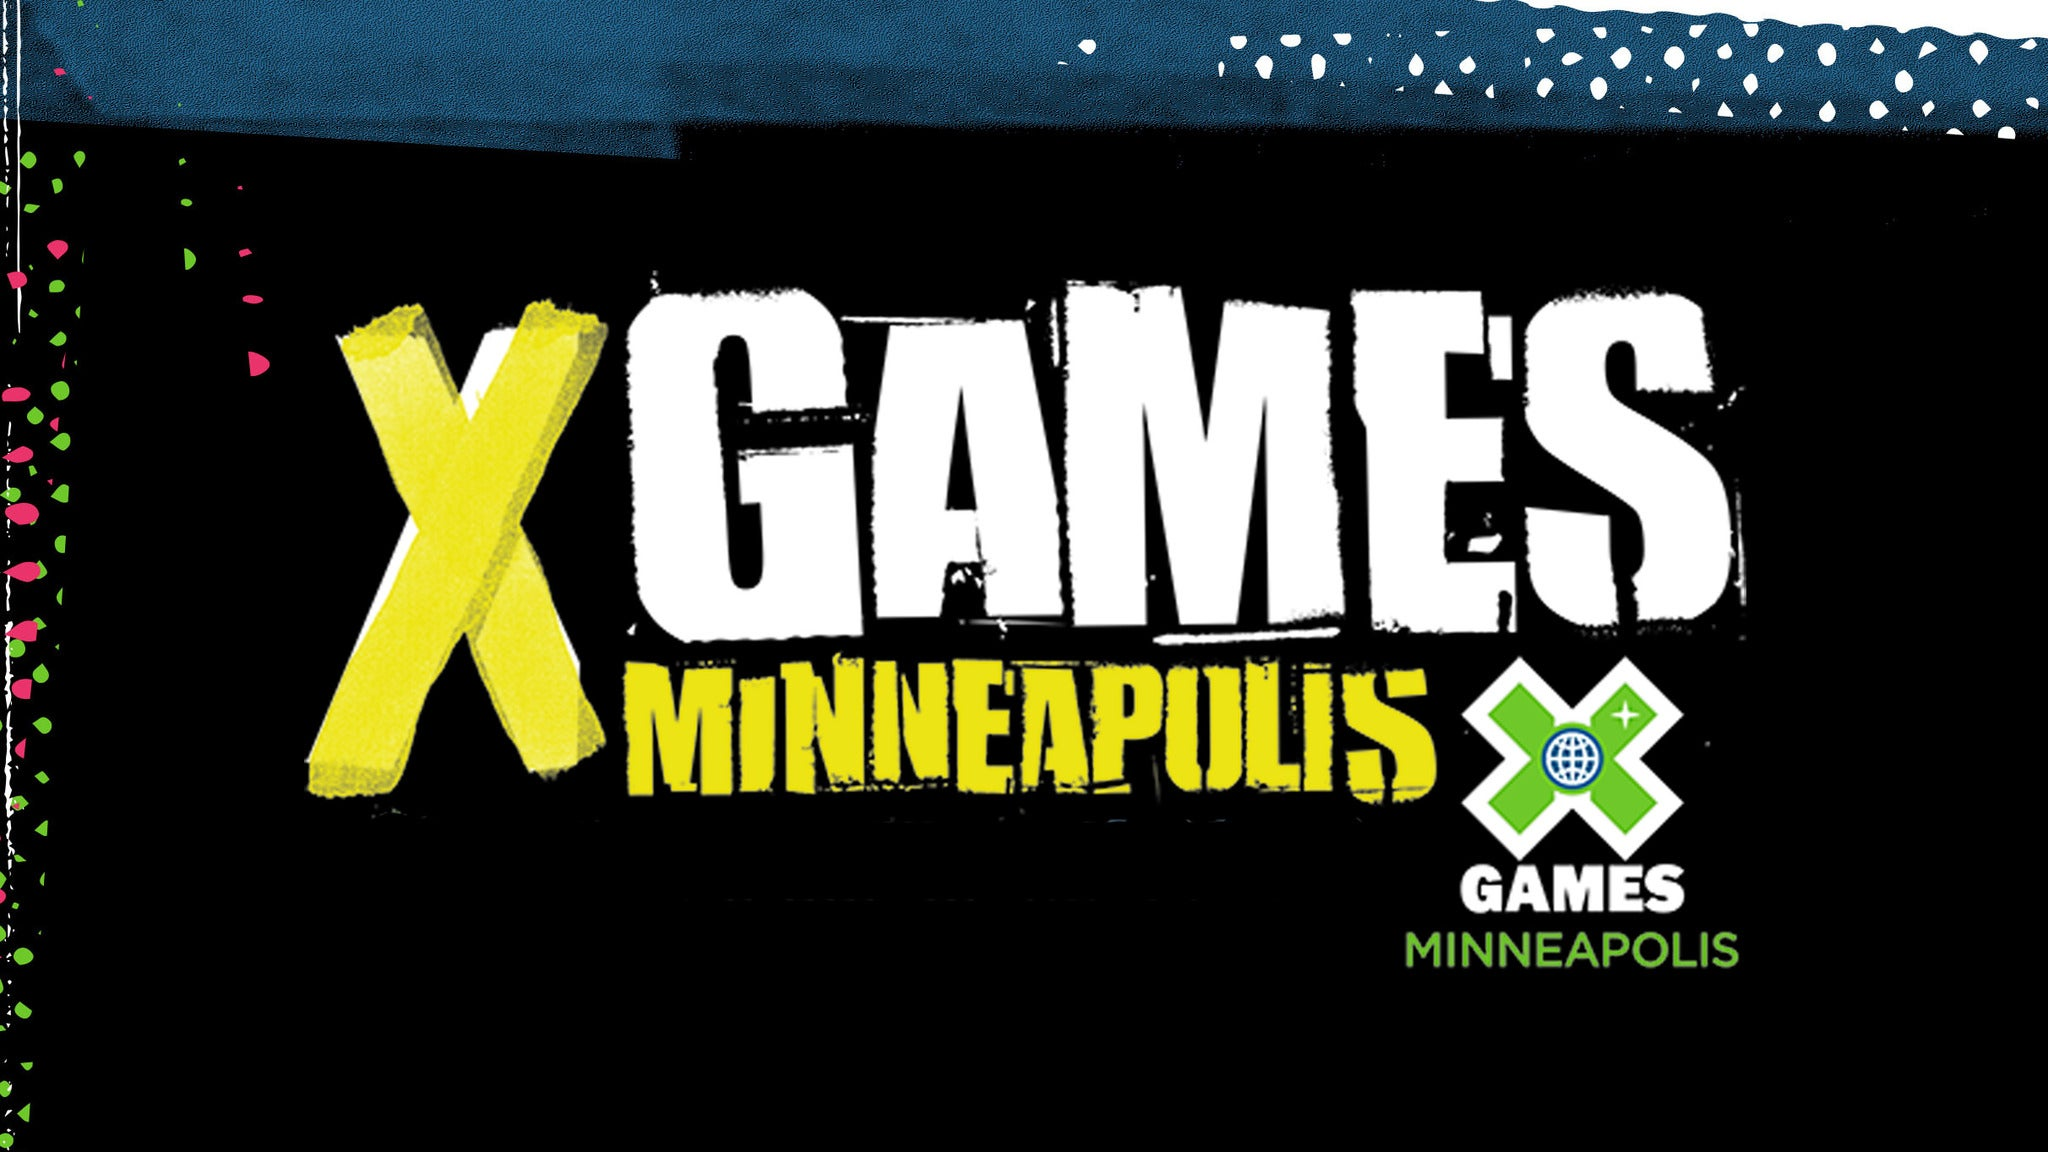 X Games Minneapolis at U.S. Bank Stadium - Minneapolis, MN 55415